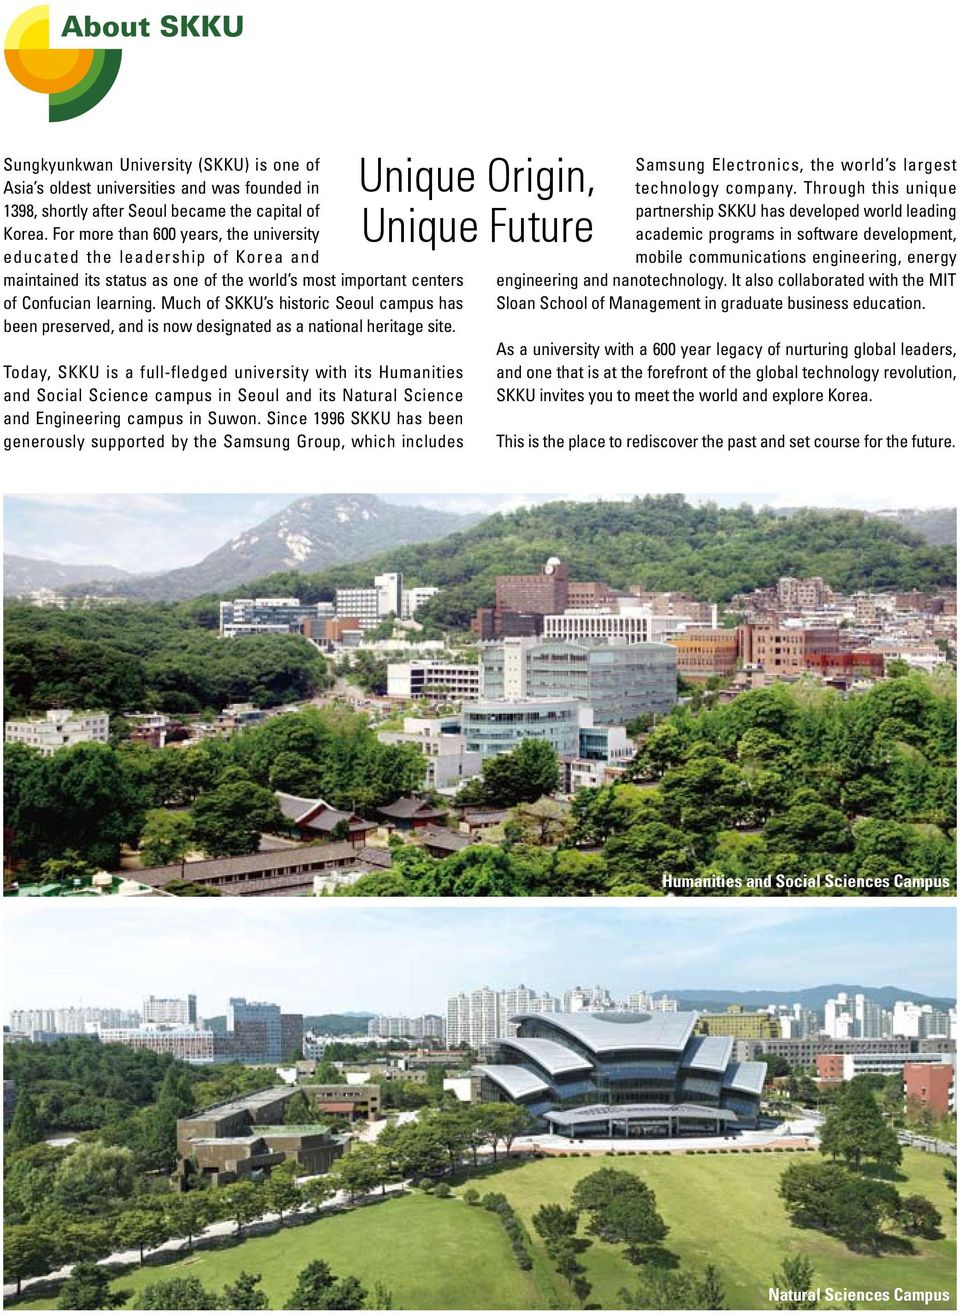 Much of SKKU s historic Seoul campus has been preserved, and is now designated as a national heritage site.